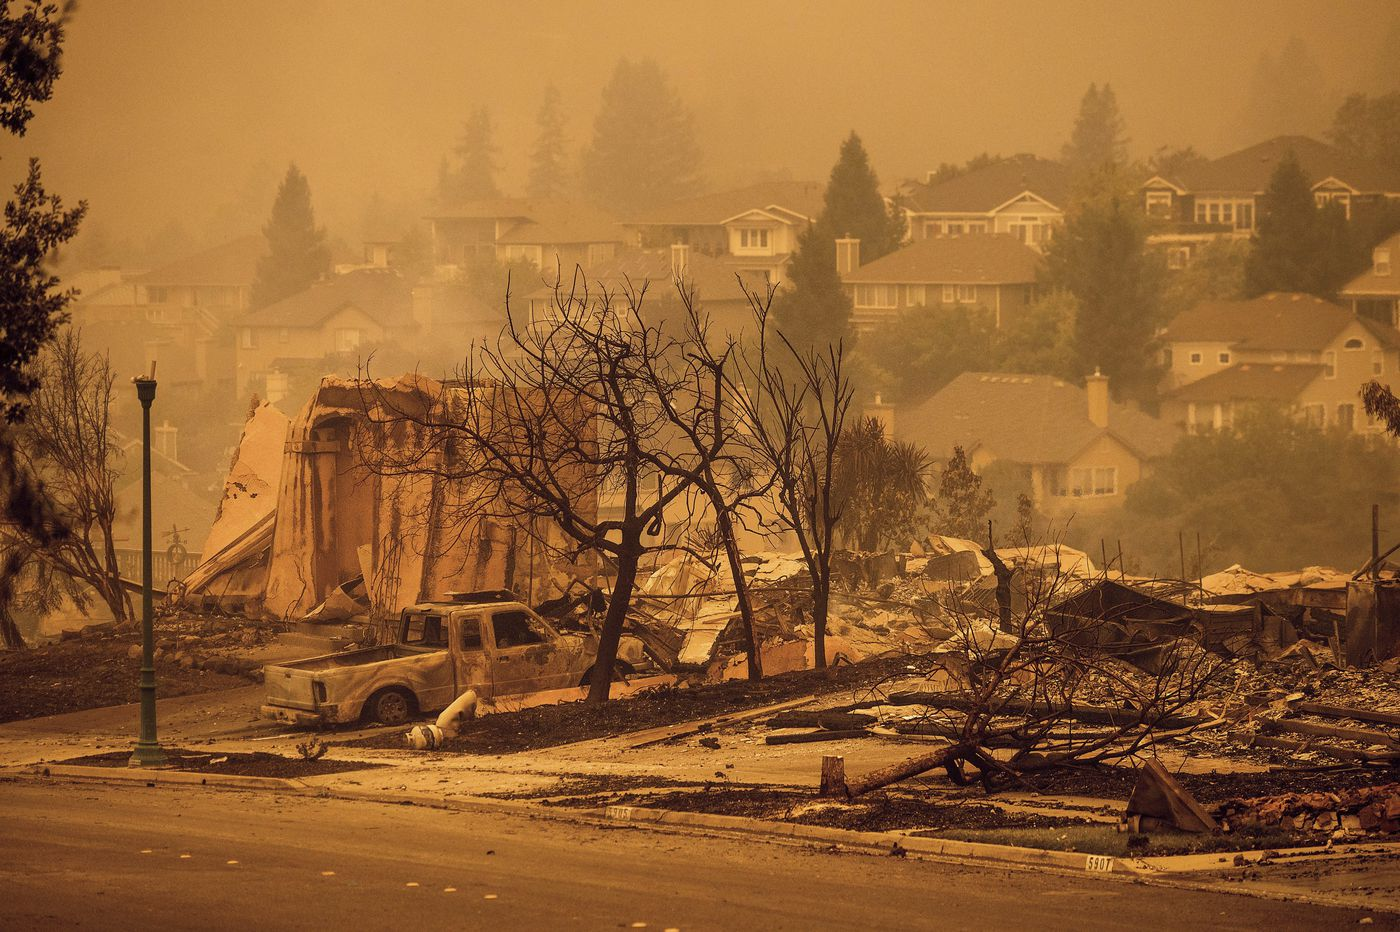 Trump administration rejects, then approves, emergency aid for California fires, including biggest blaze in state history